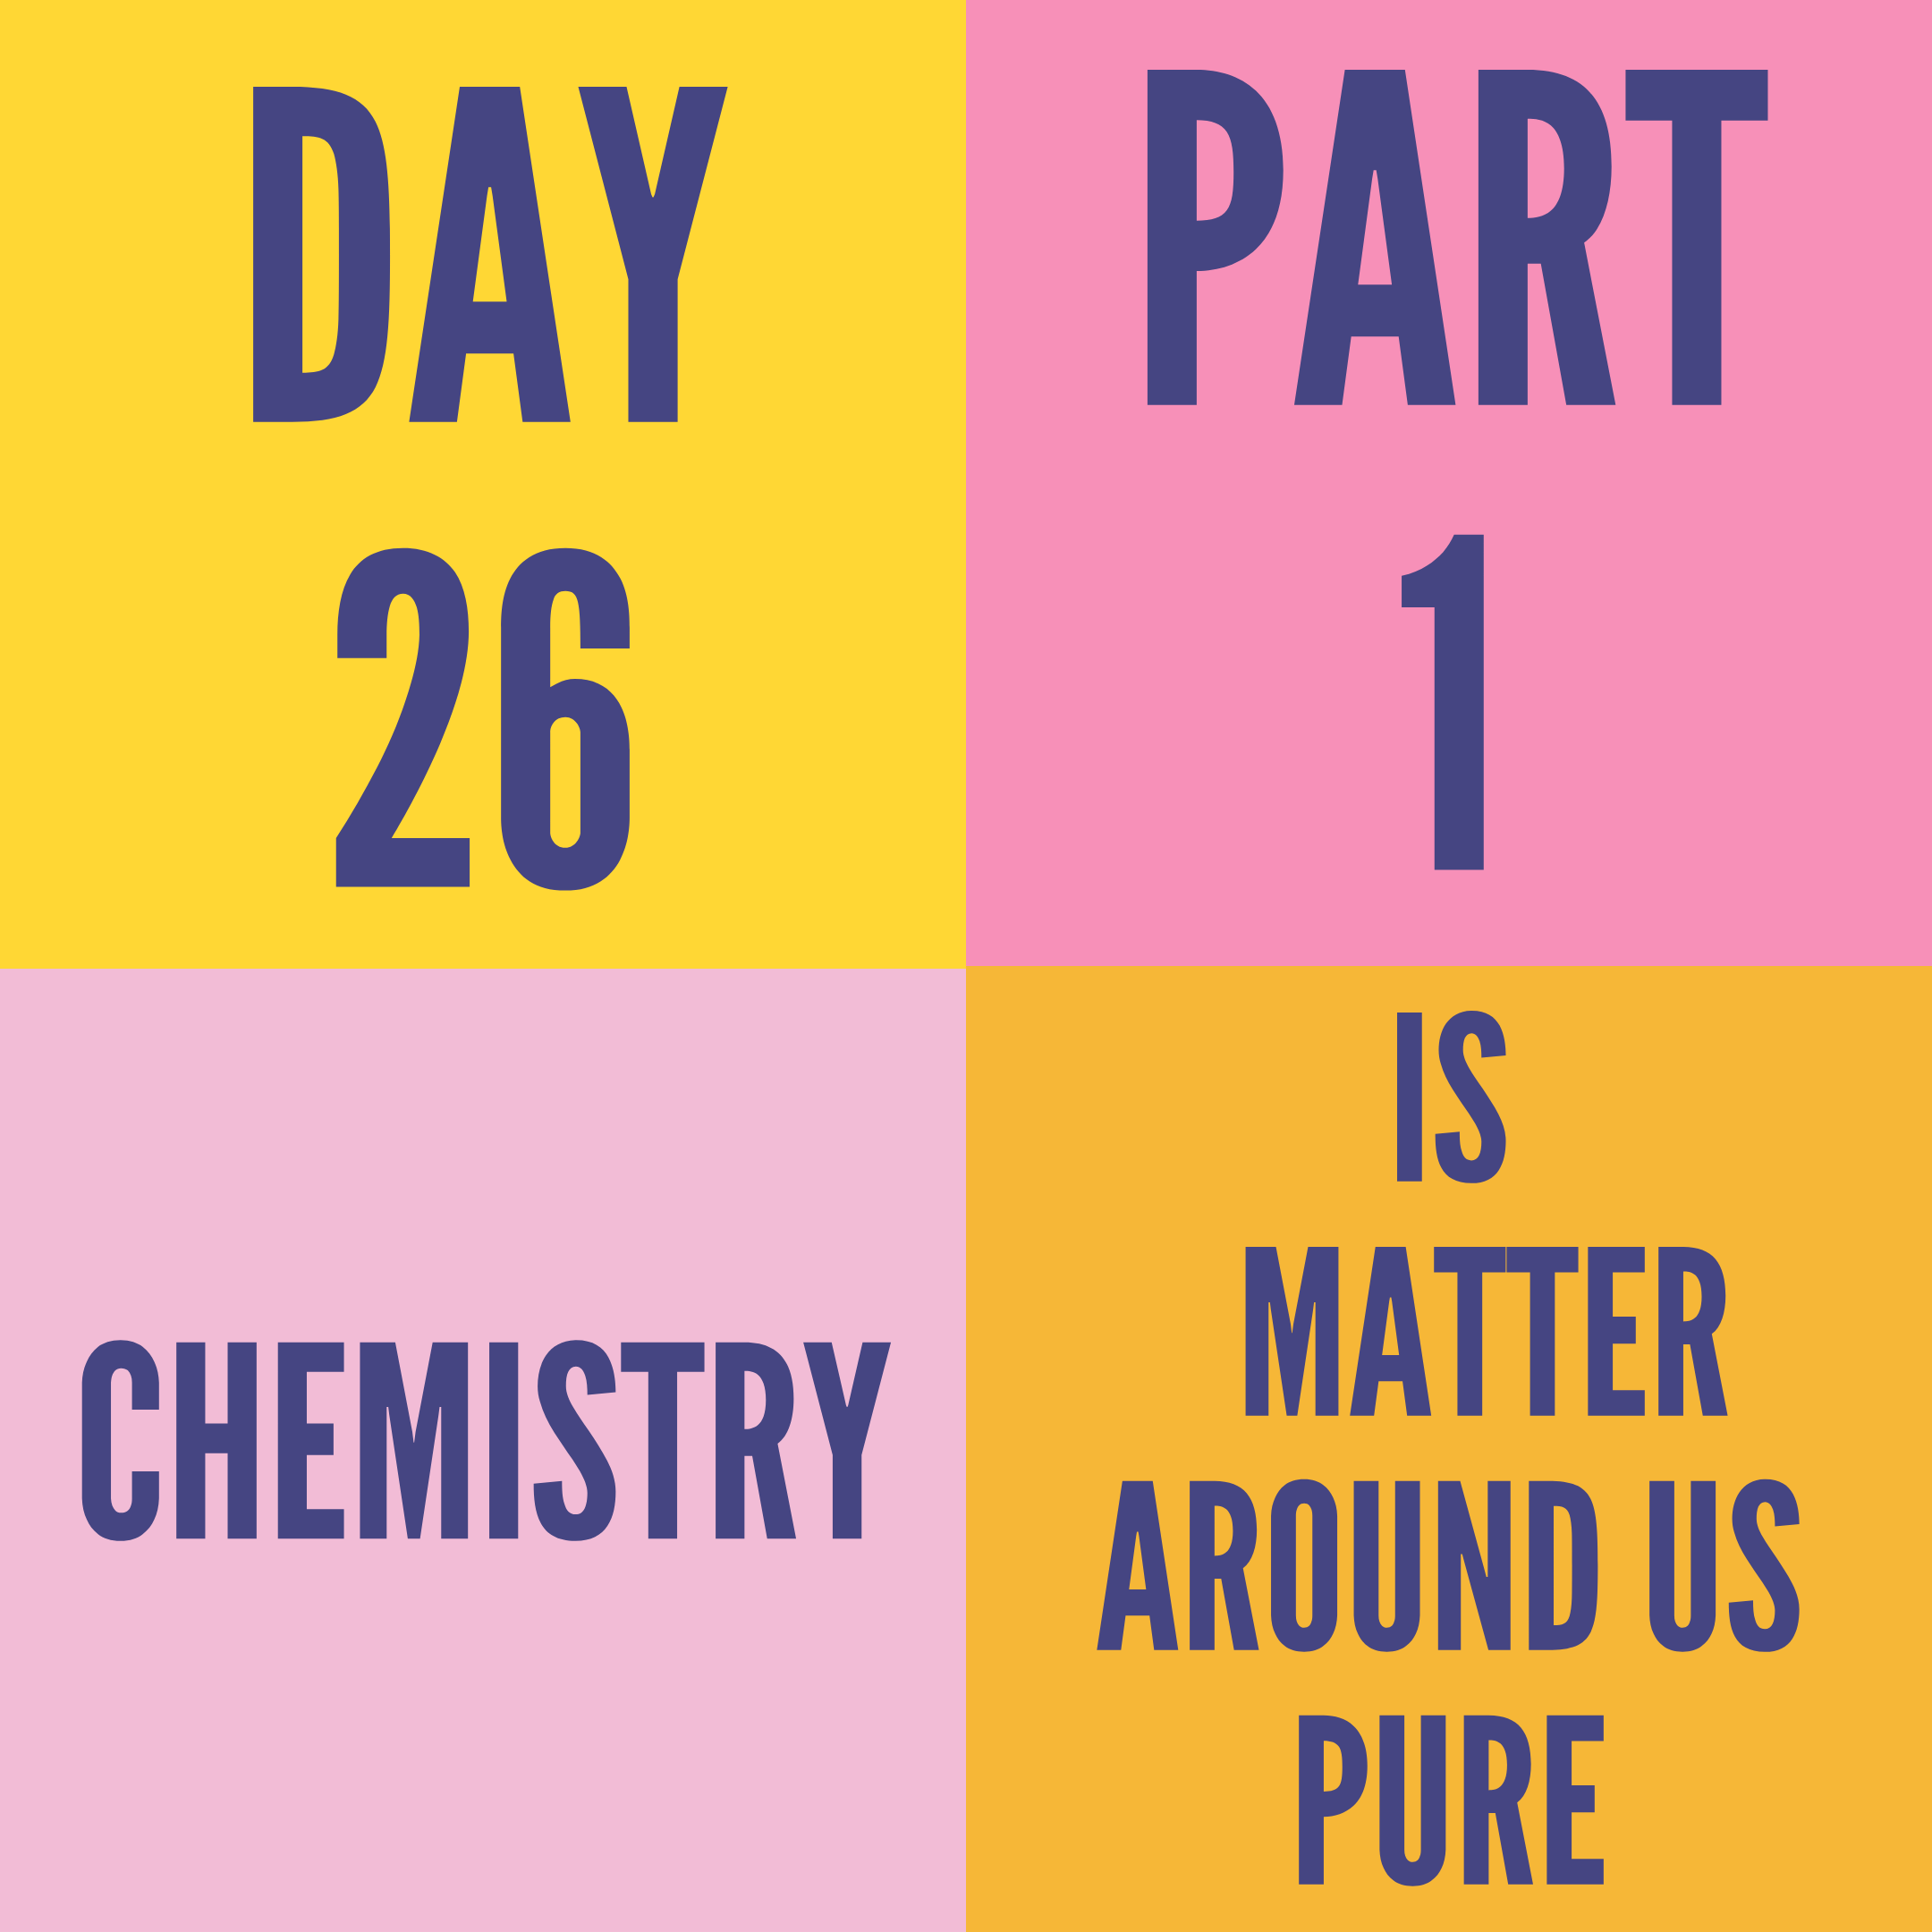 DAY-26 PART-1 IS MATTER AROUND US PURE